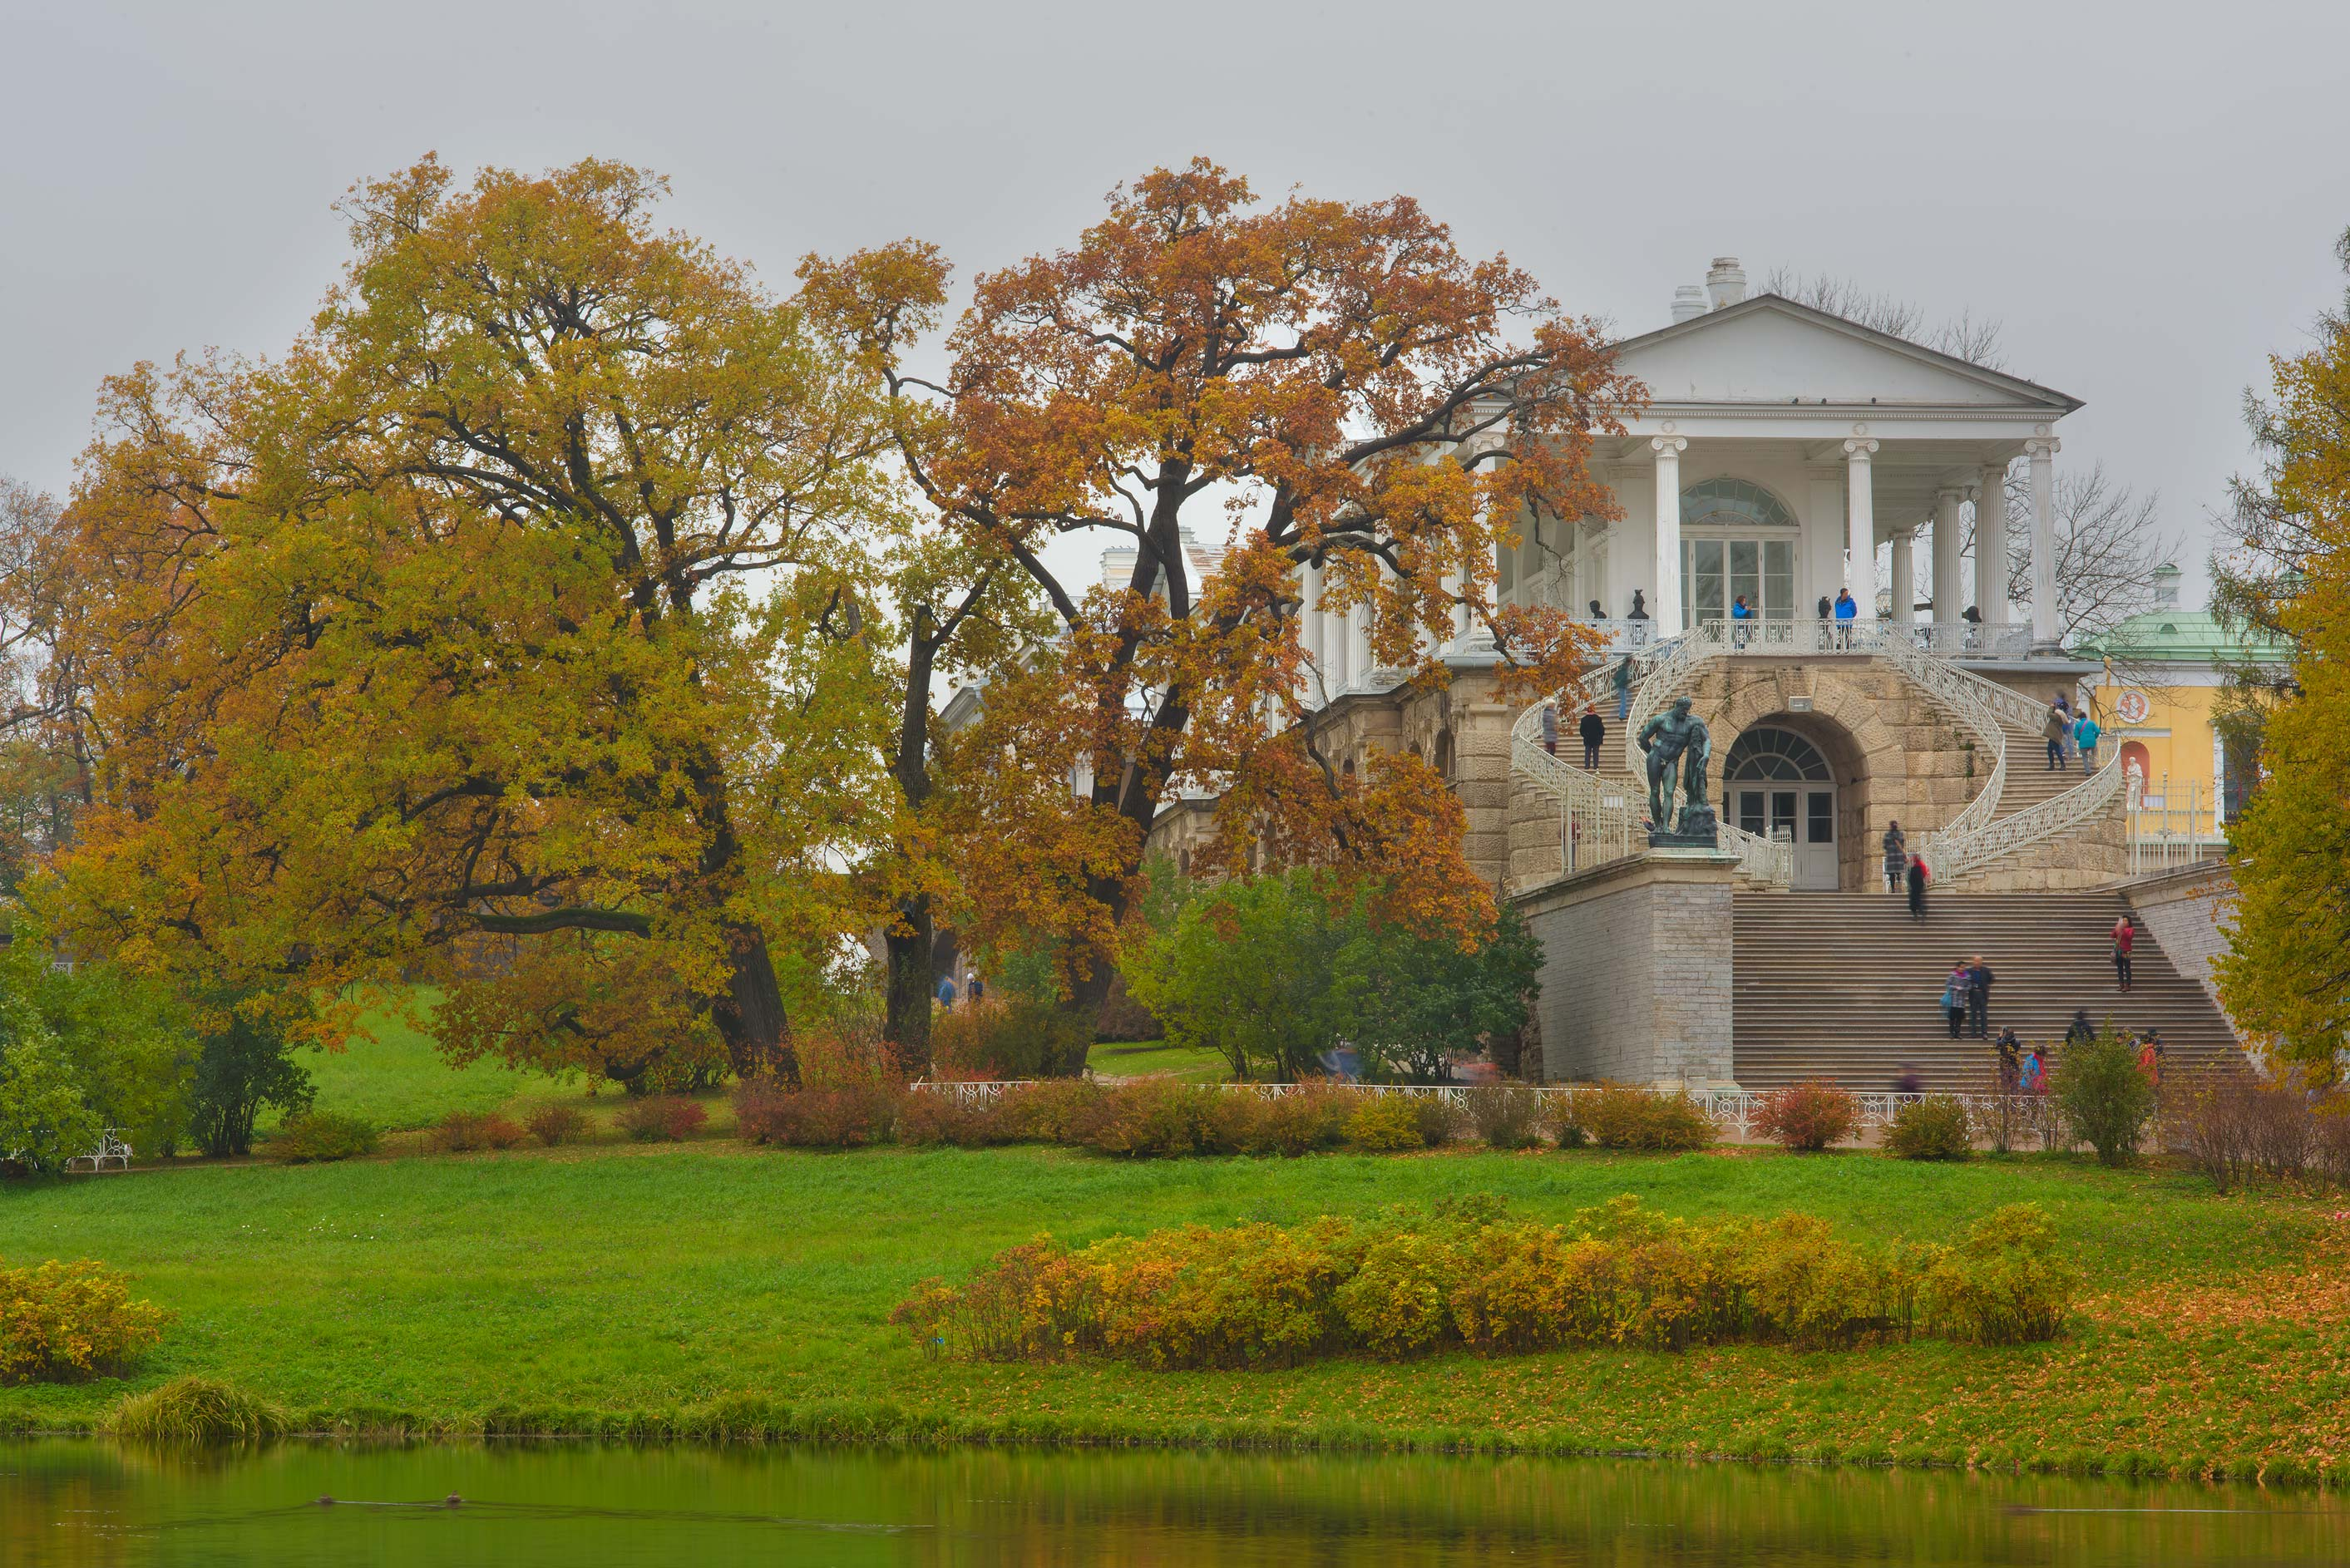 Cameron Gallery in Catherine Park. Pushkin...Selo) near St.Petersburg, Russia